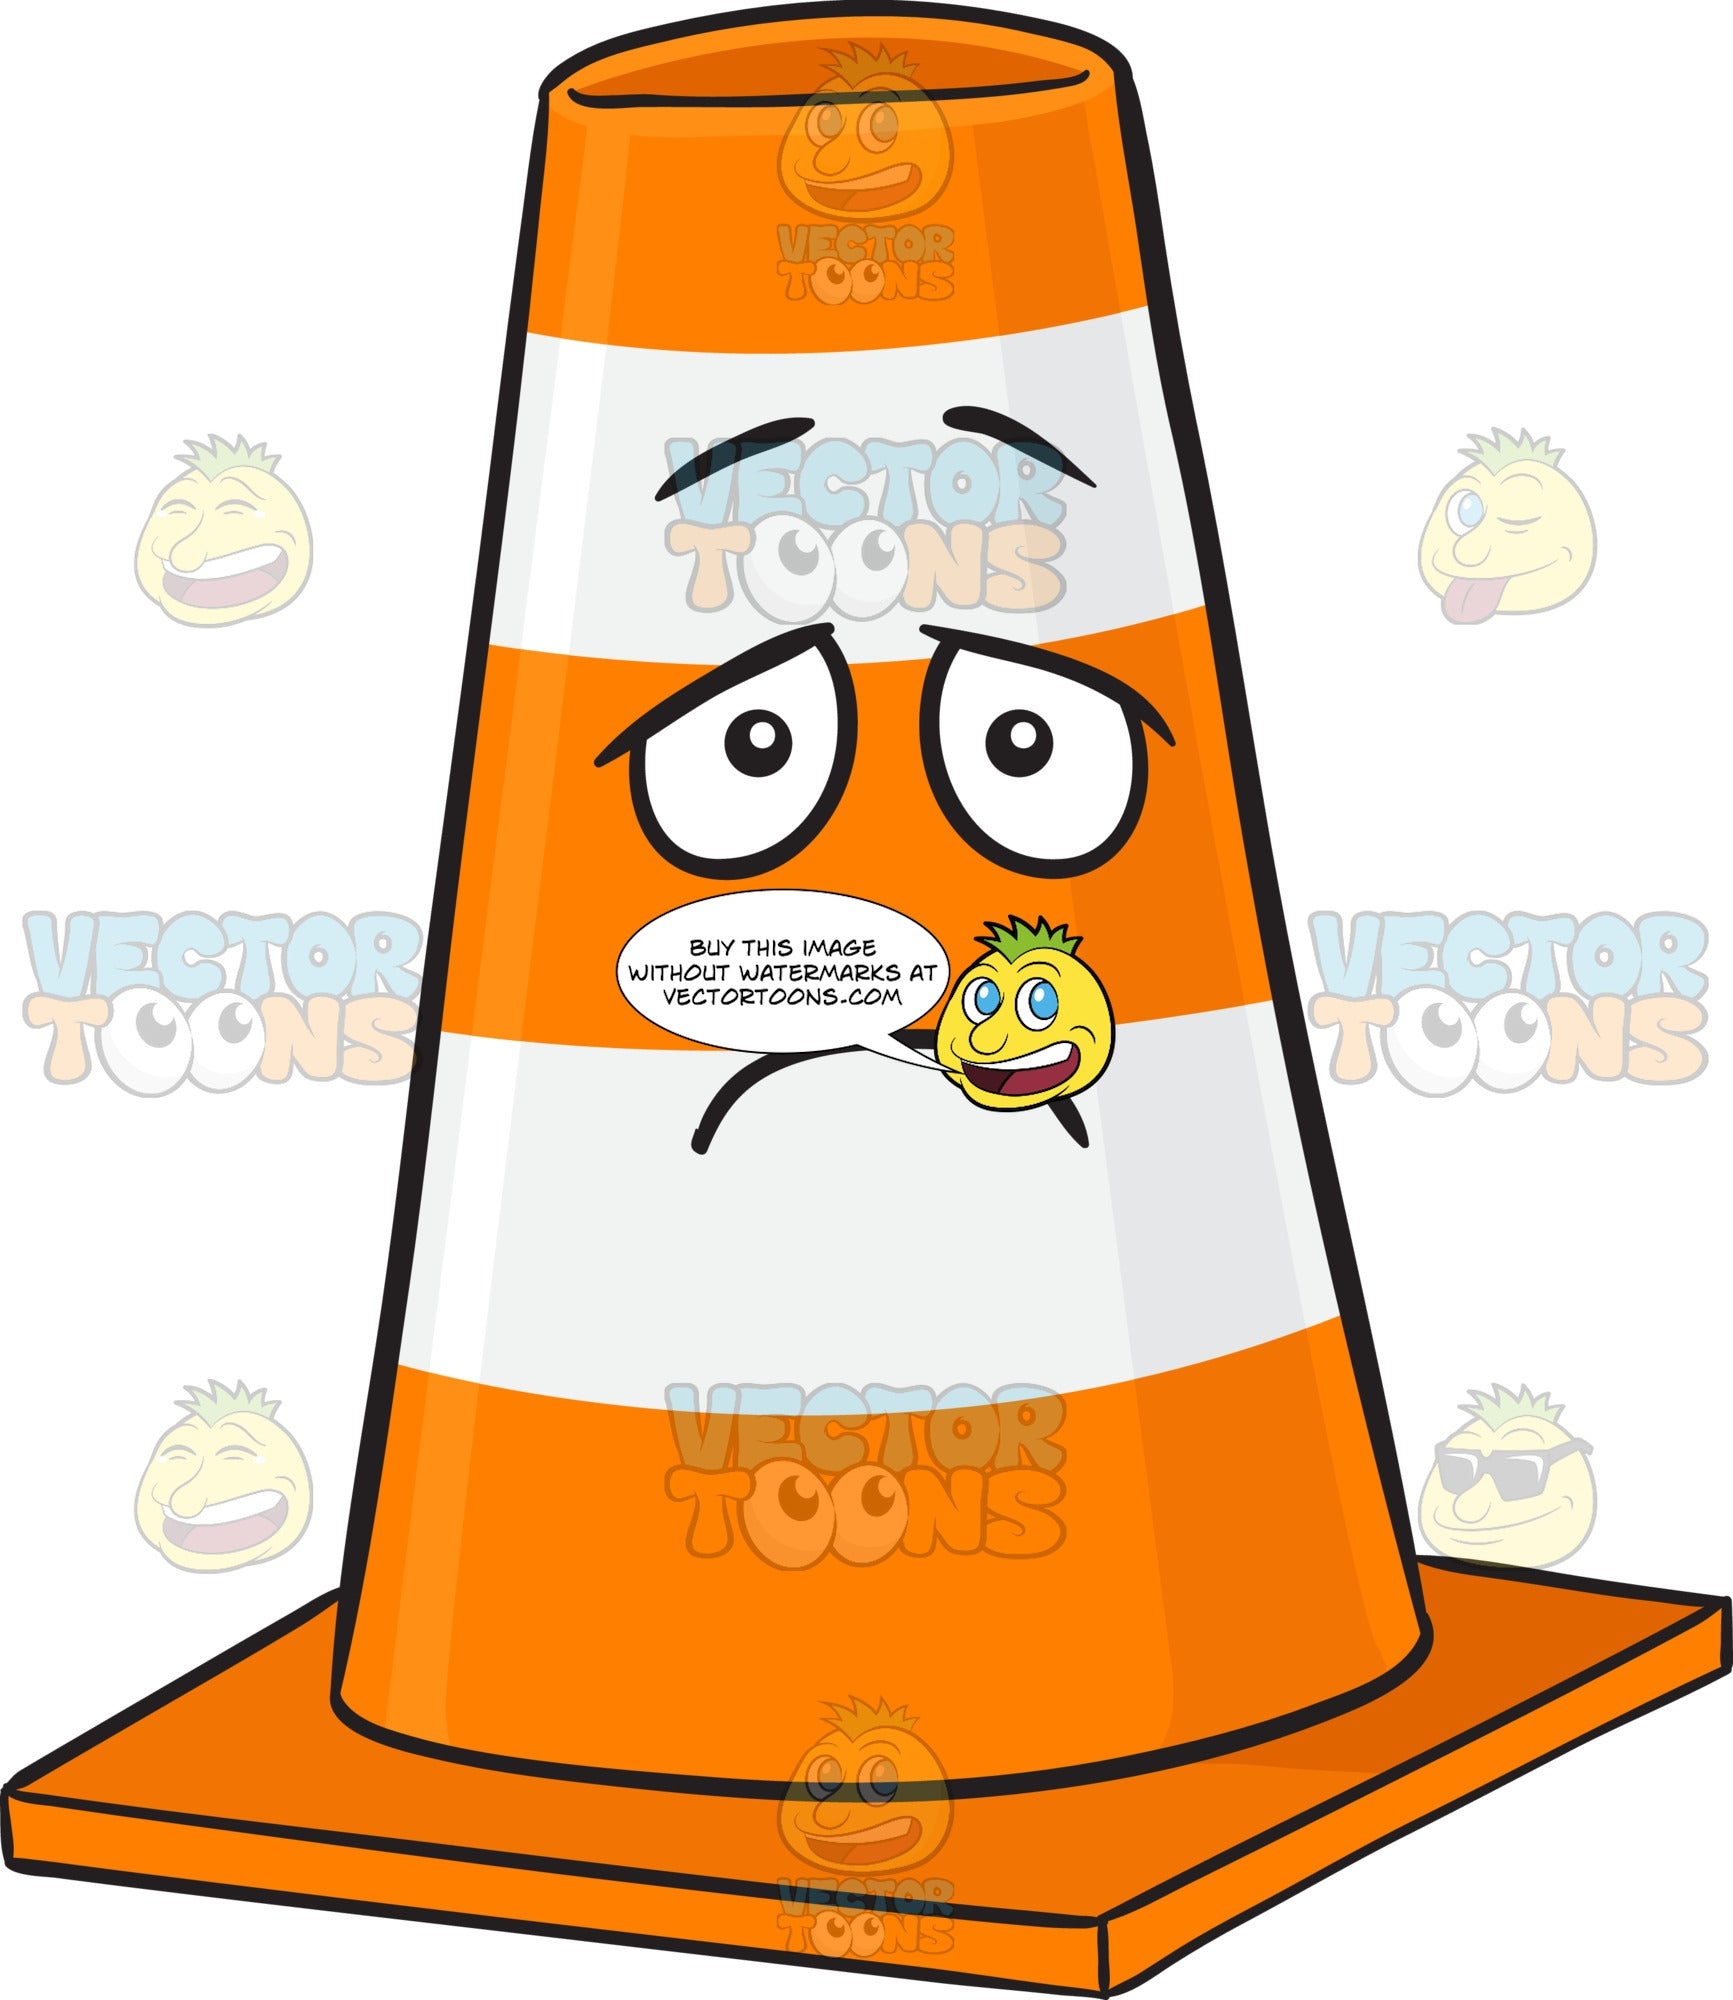 Traffic Cone Character With Depressed Look On Face Emoji